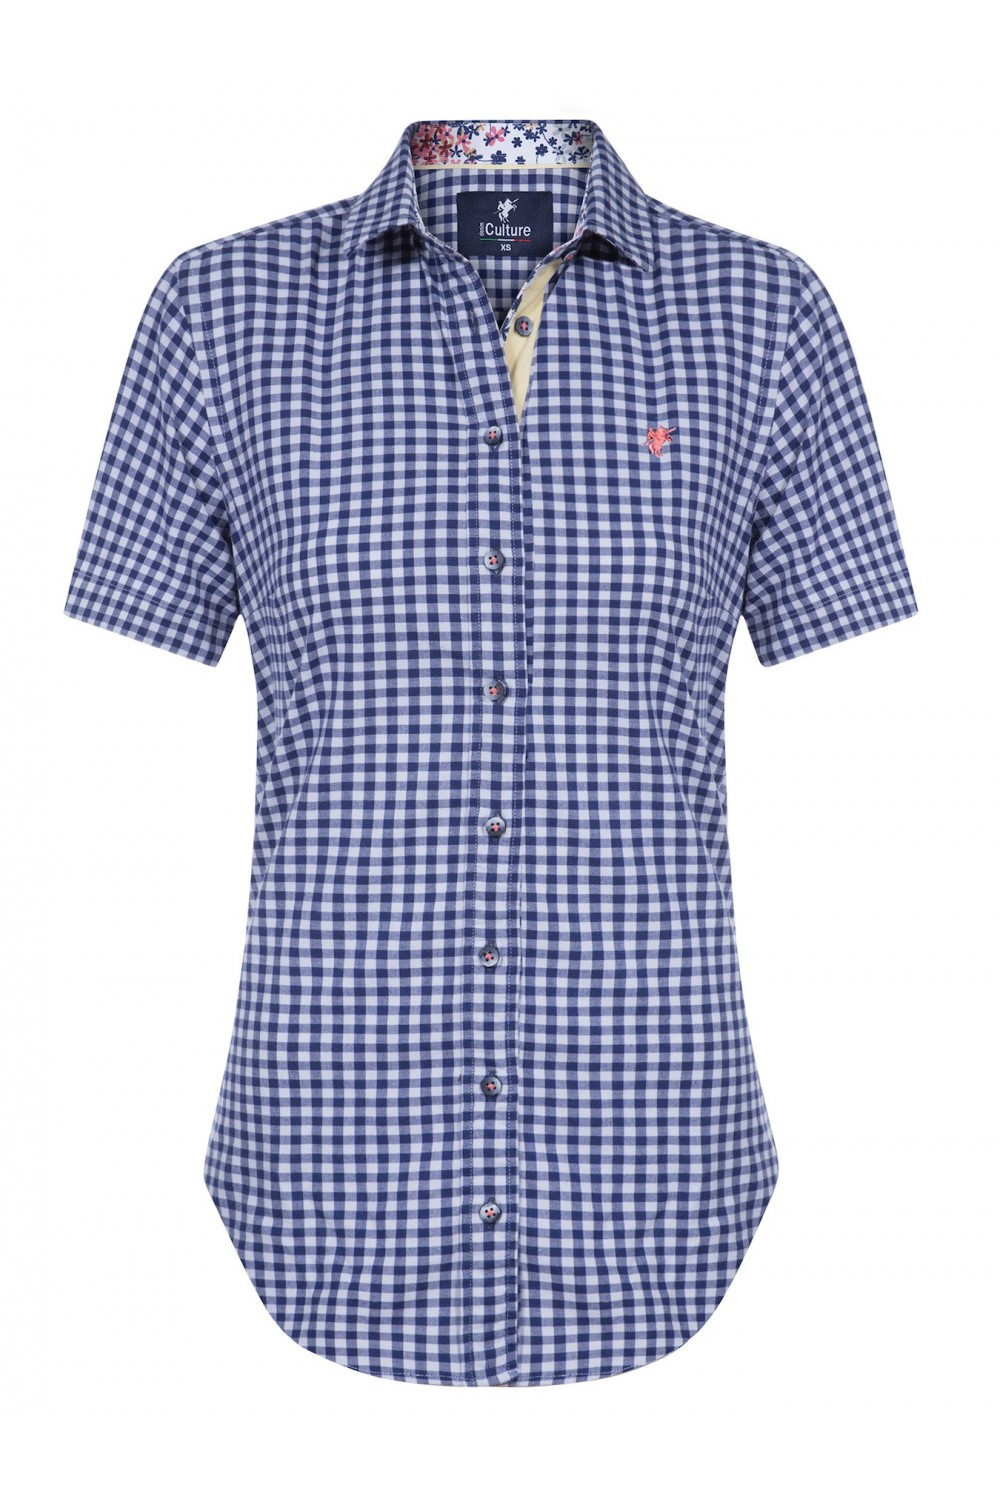 Women's Blouse Navy Checked Cotton